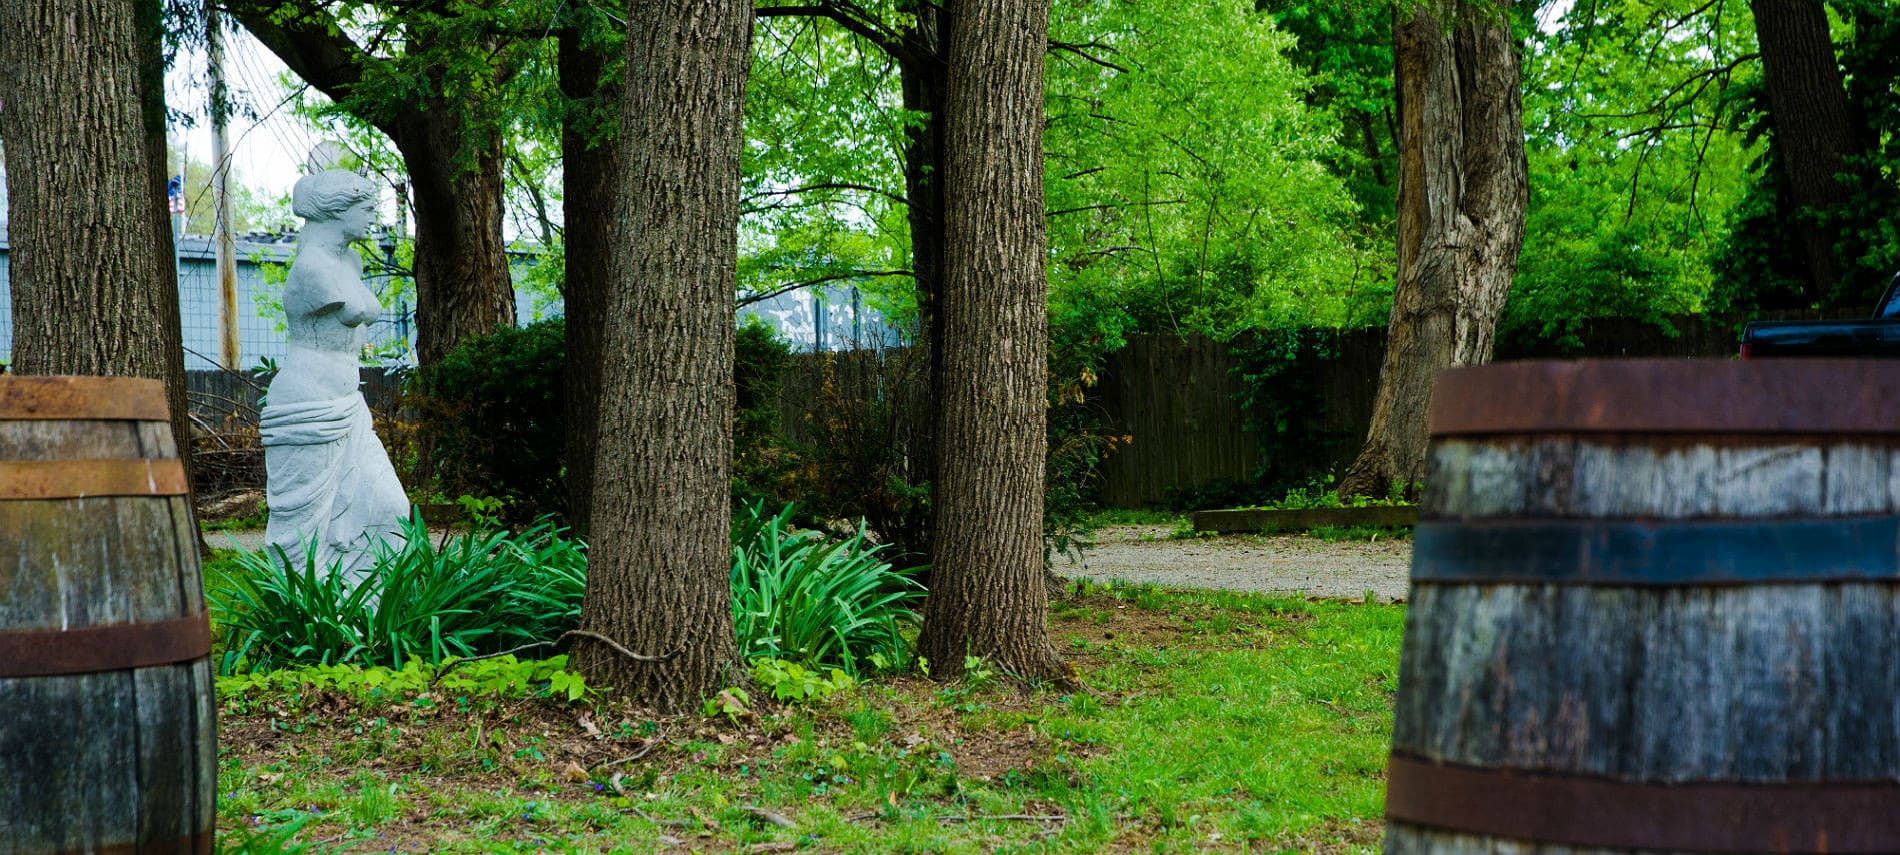 Bourbon Manor B&B grounds featuring mature trees, Venus di Milo statue in lush greenery and bourbon barrels